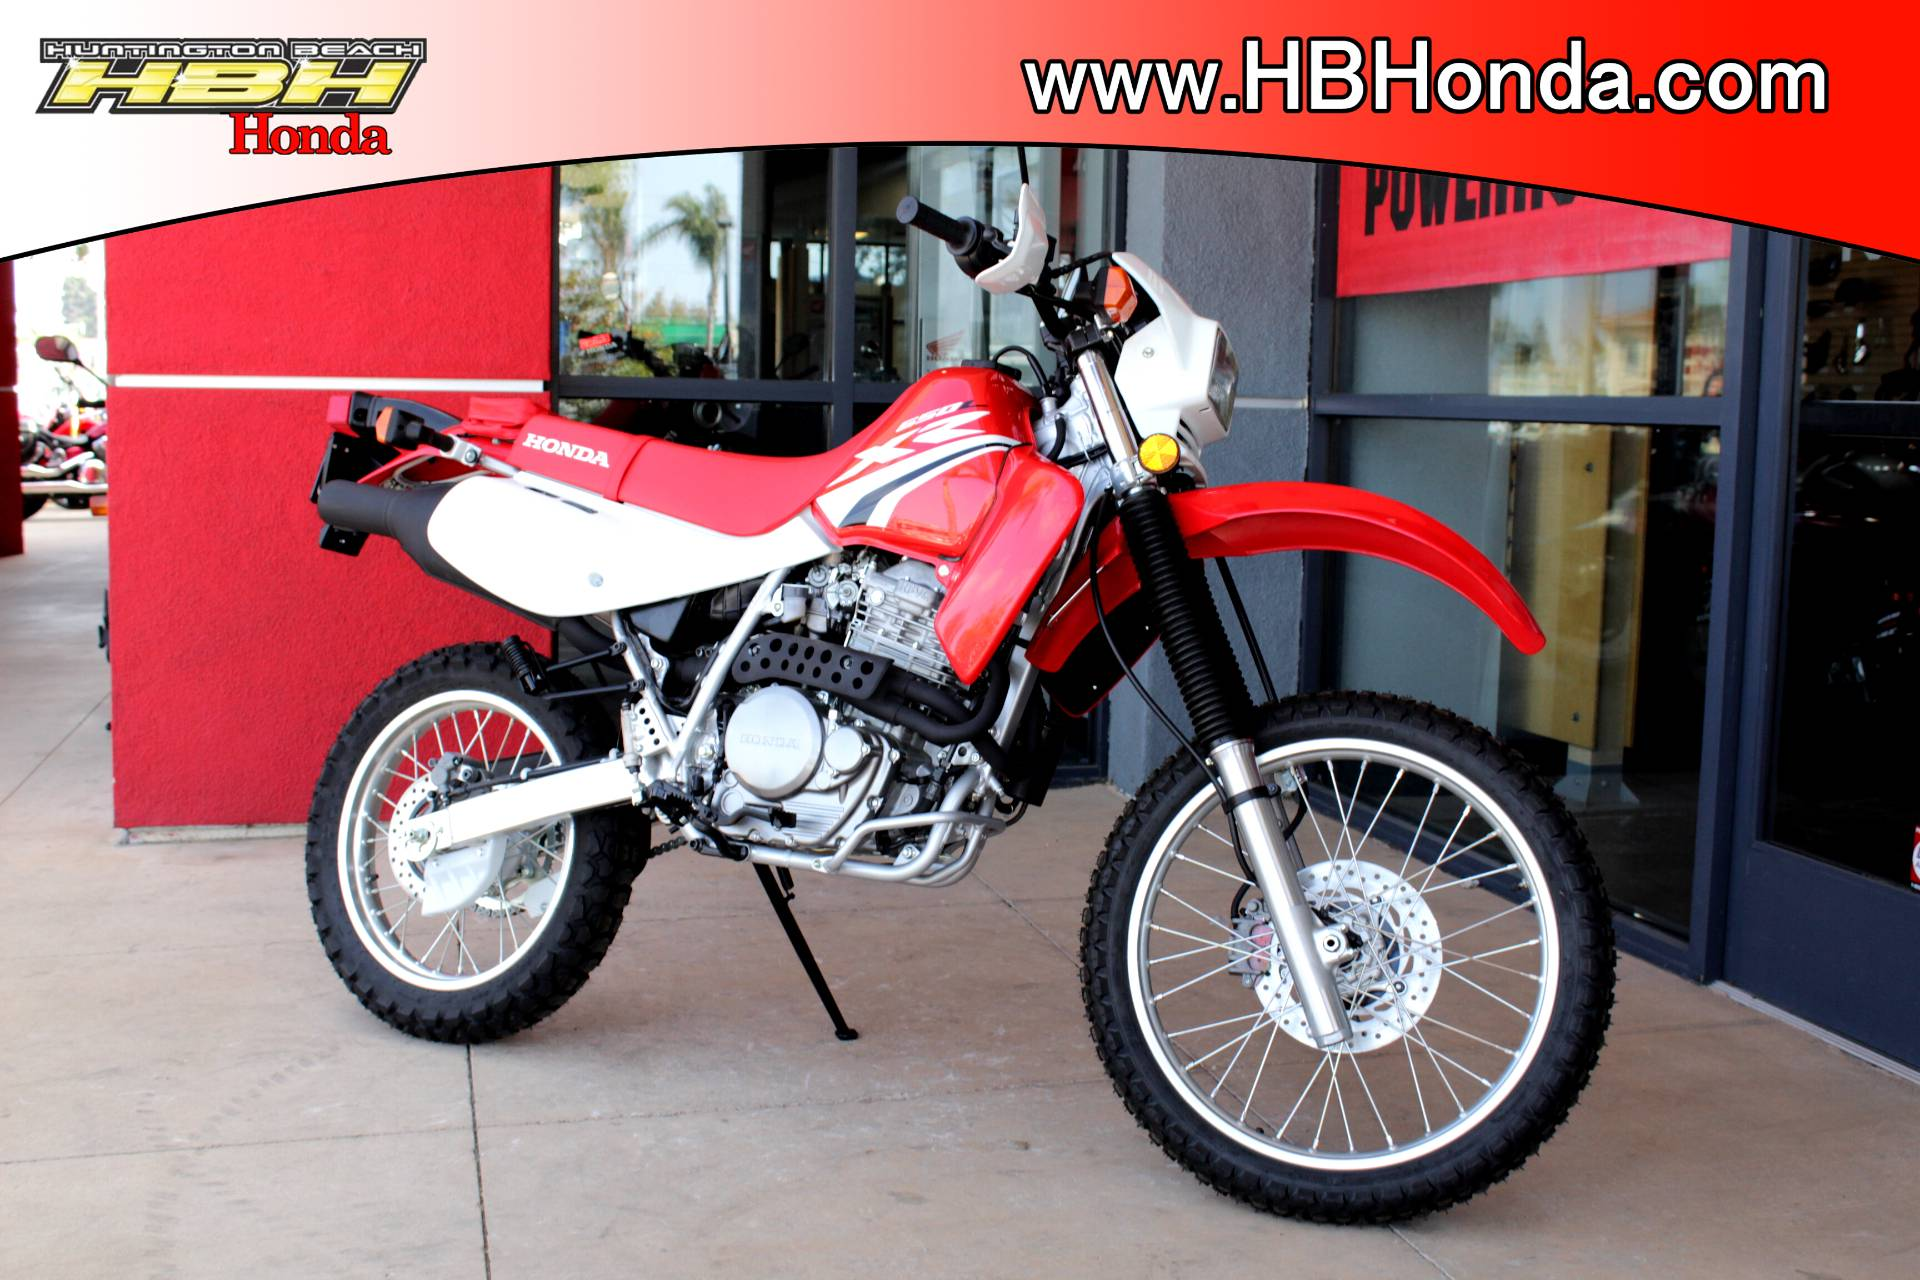 Honda Motorcycle Dealer Huntington Beach